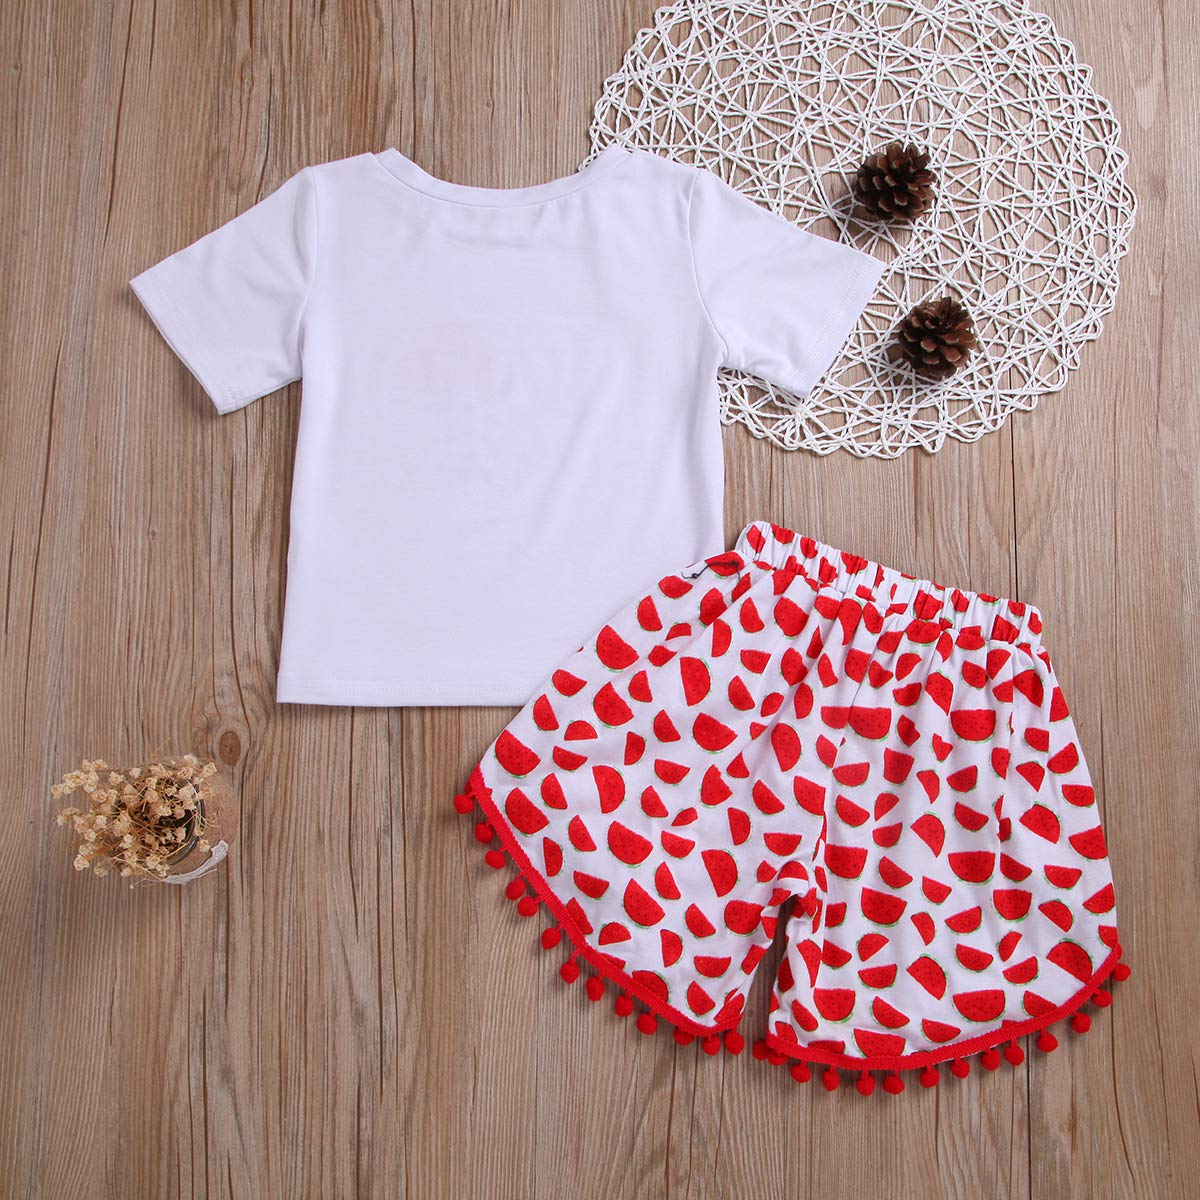 Toddler Baby Girls I Love Summer Tshirt Tassel Short Pants Outfits Clothes Sets